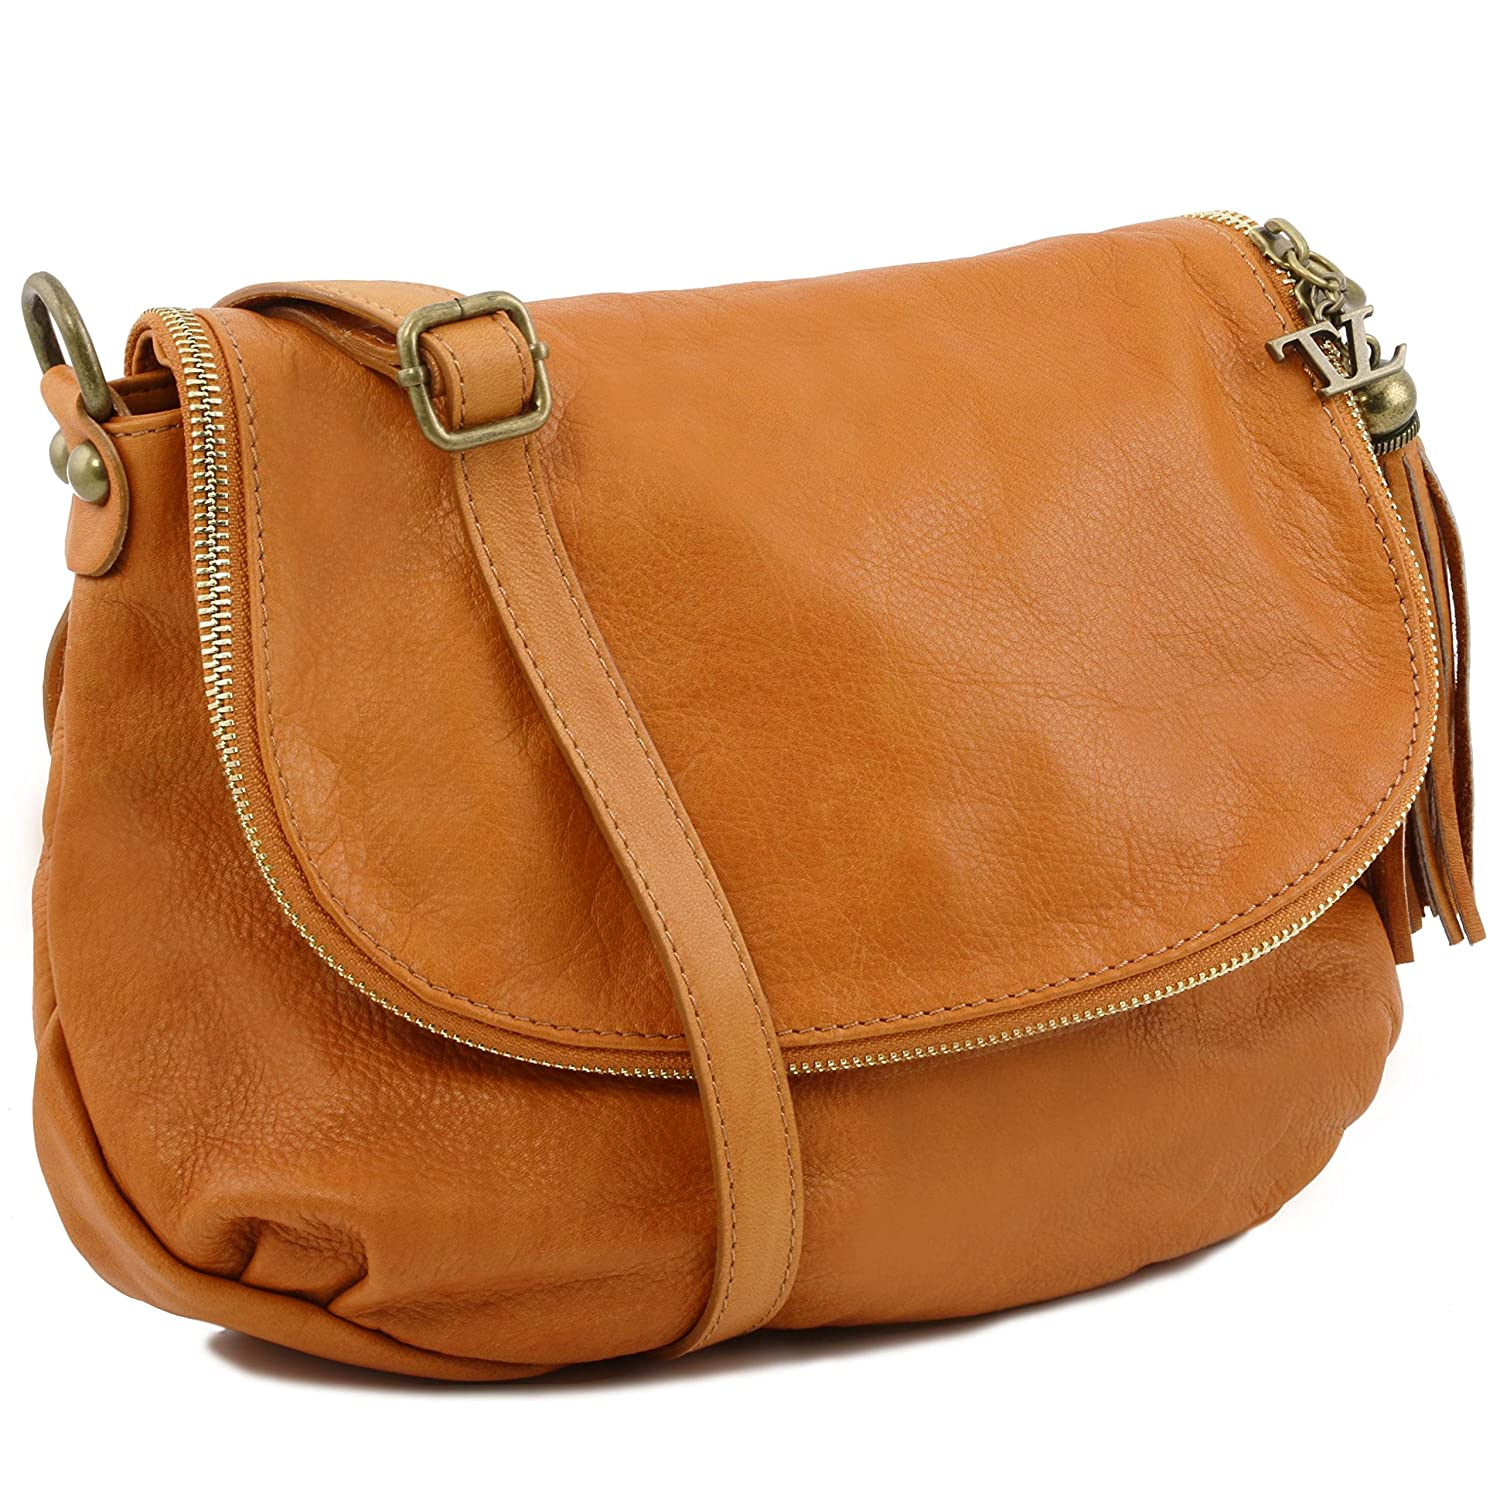 Amazon.com: Tuscany Leather TL Bag - Soft leather shoulder bag ...